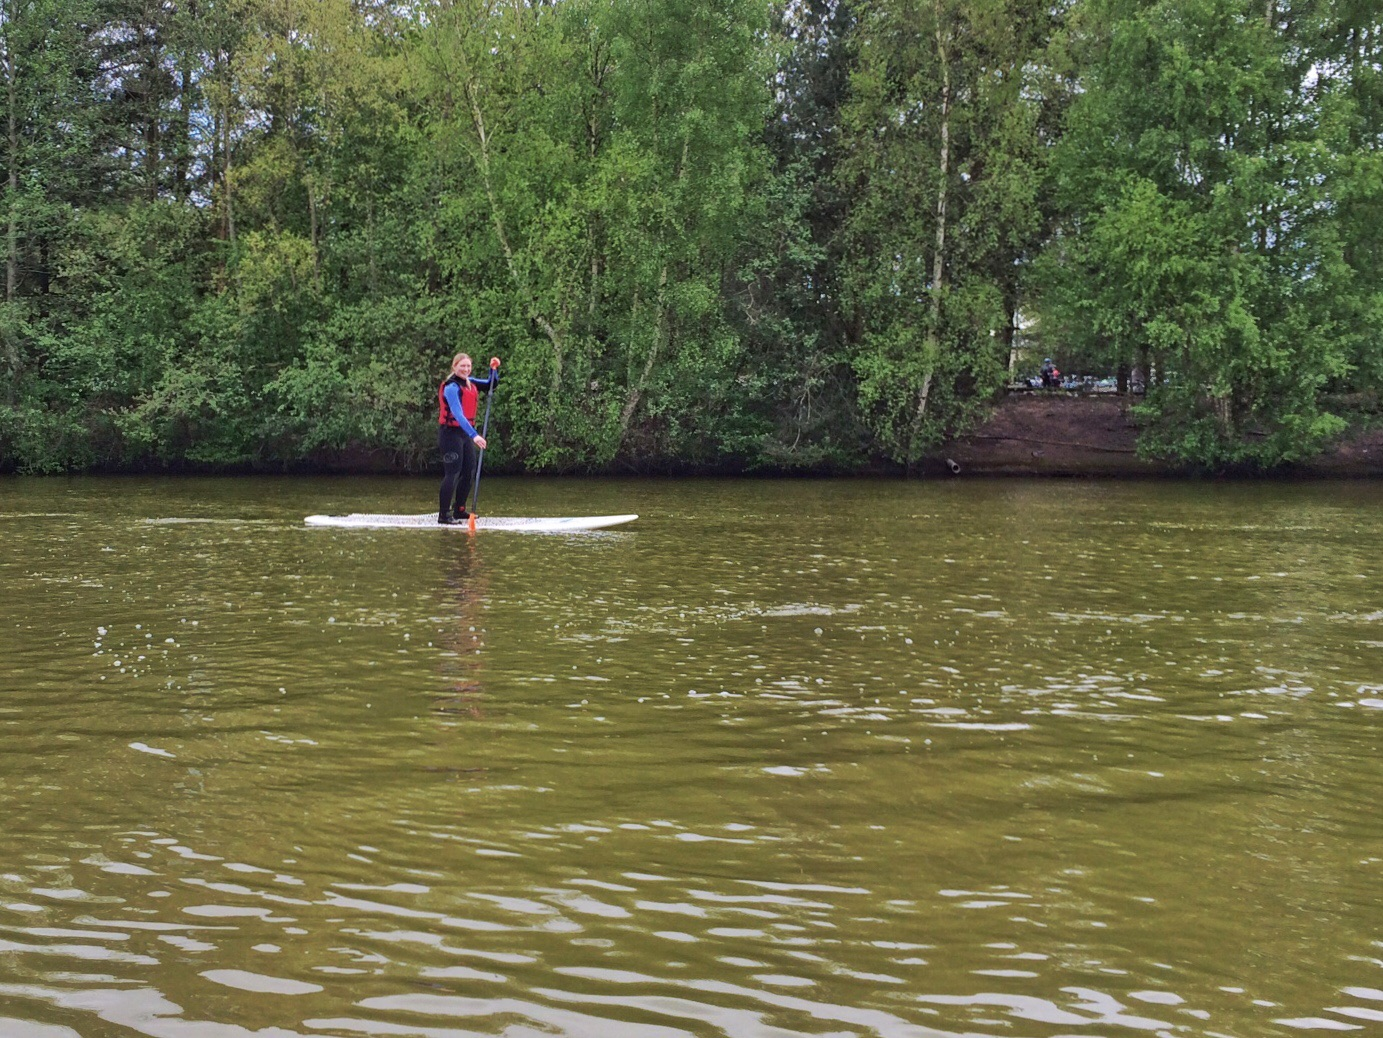 A Standup Paddleboard (SUP) Lesson